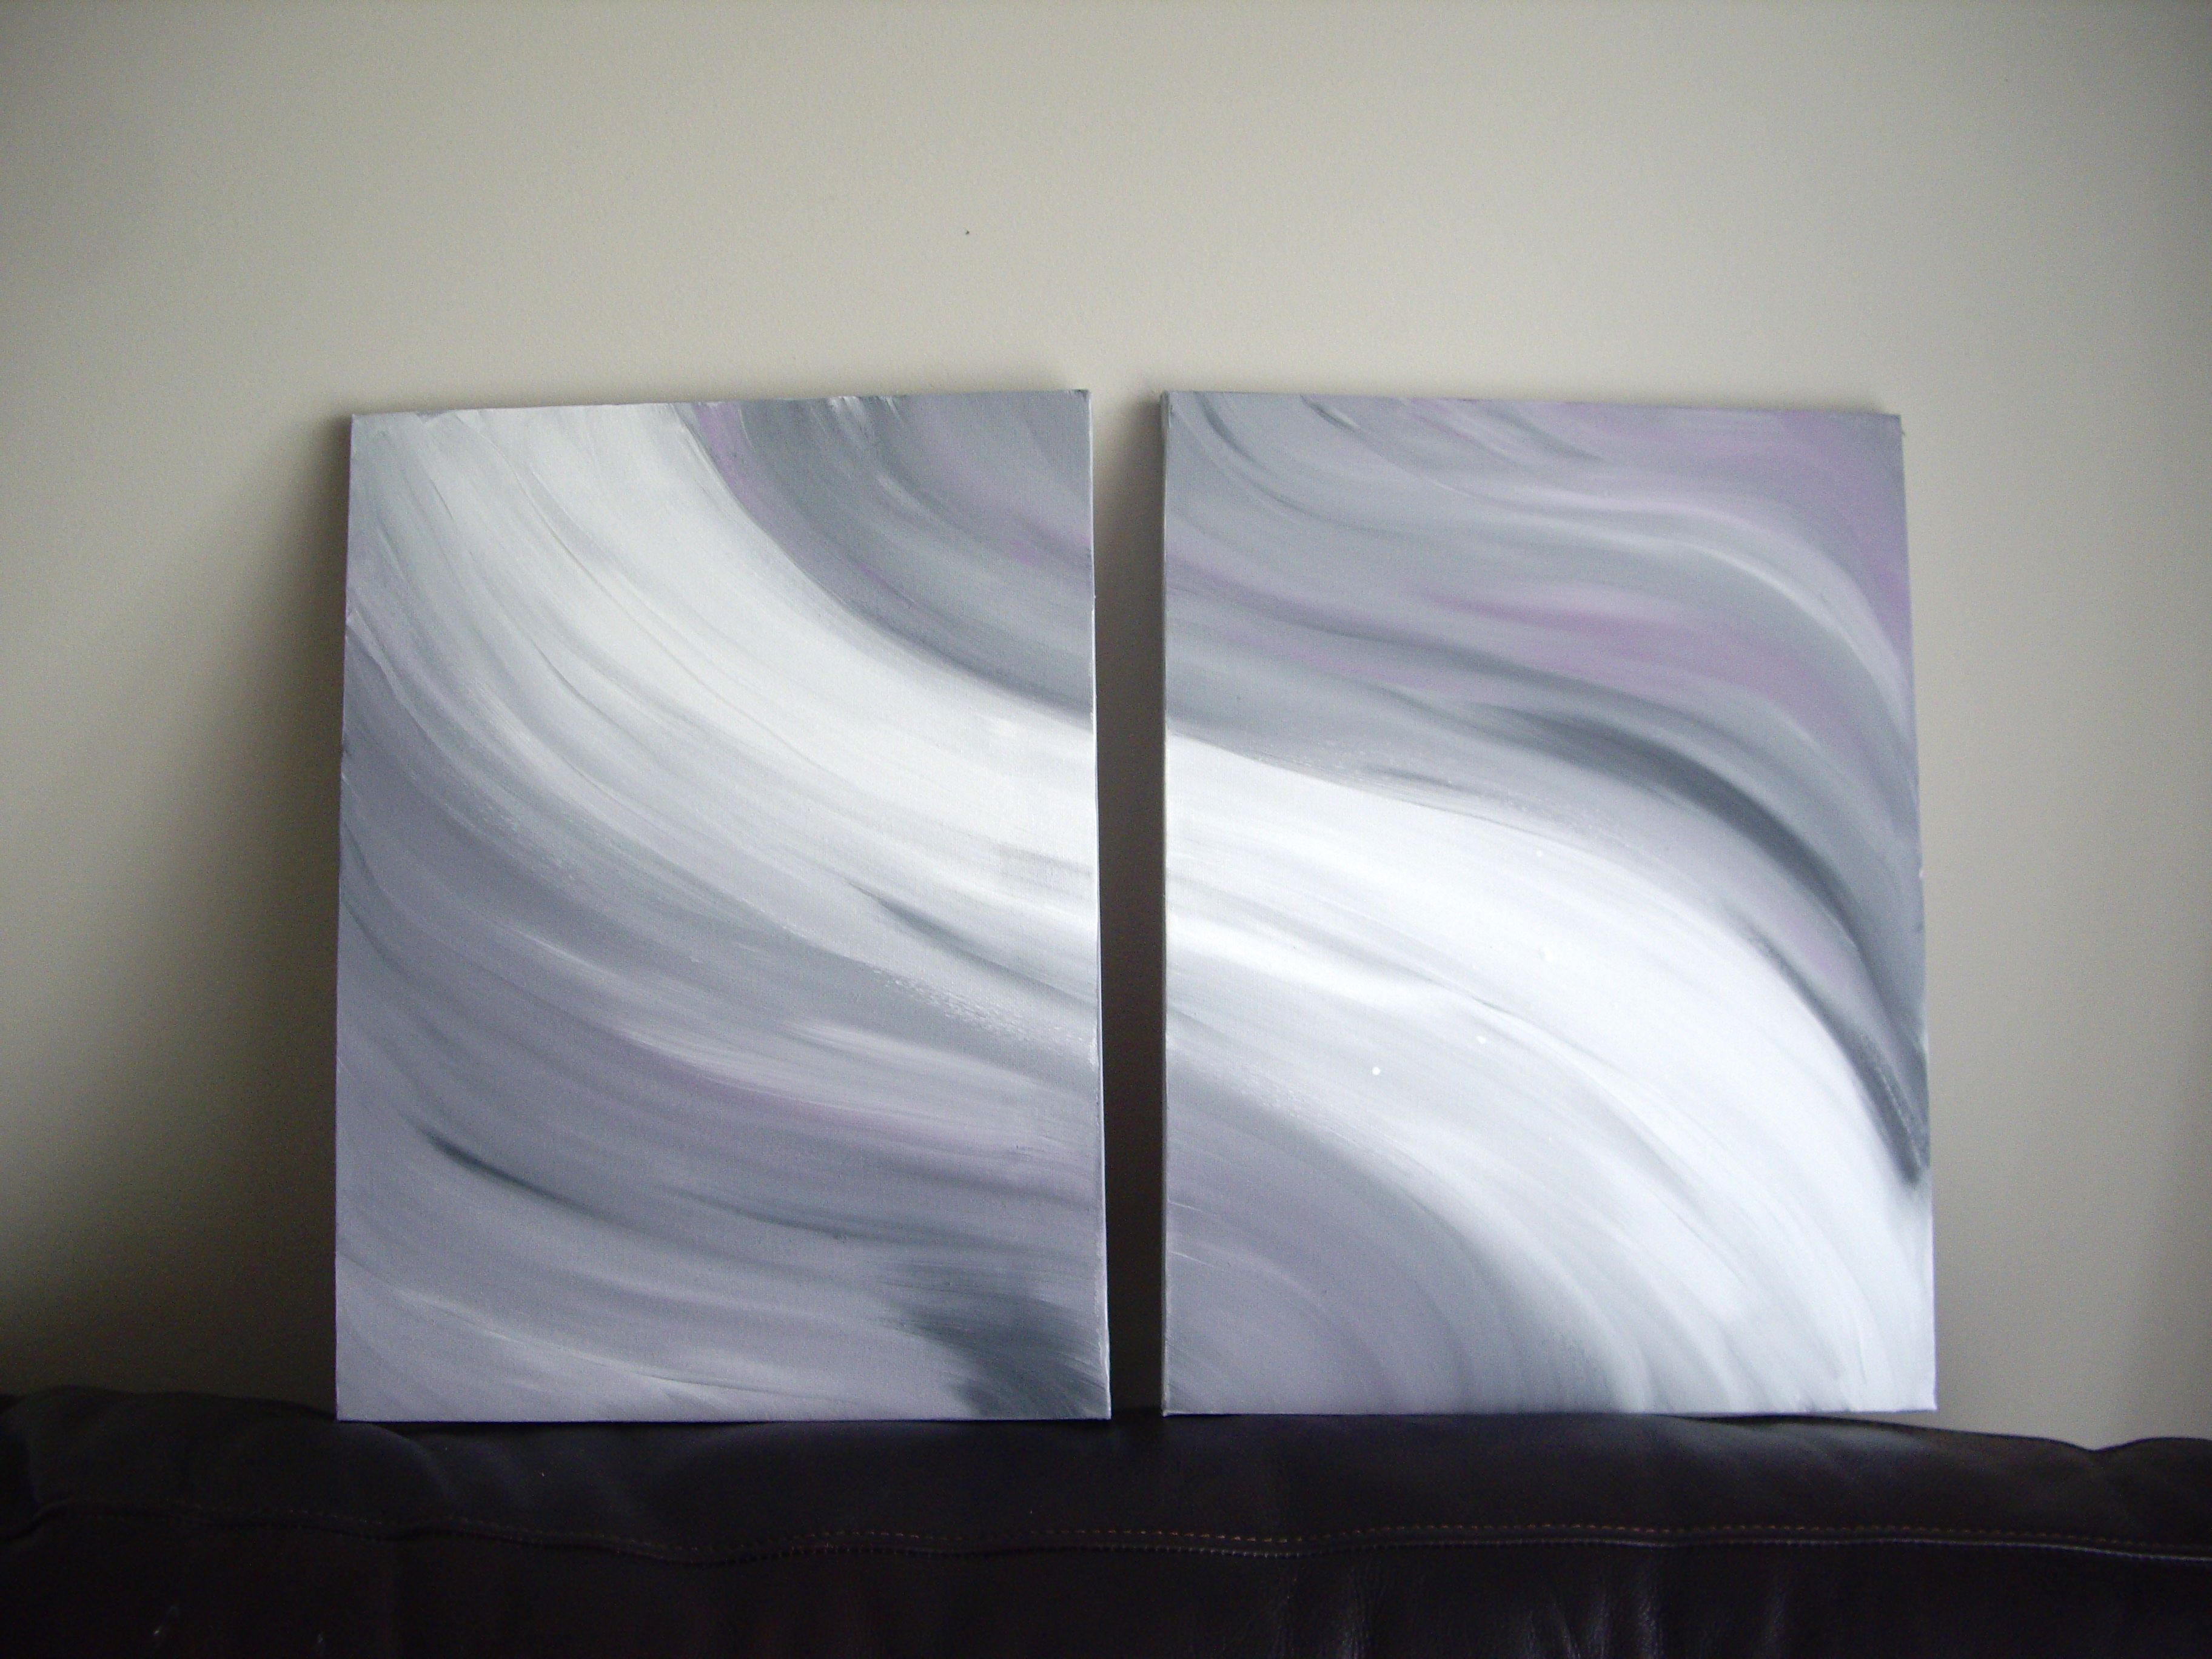 Black White And Gray Paintings Diptych Abstract Acrylic Painting On Canvas Grey Black